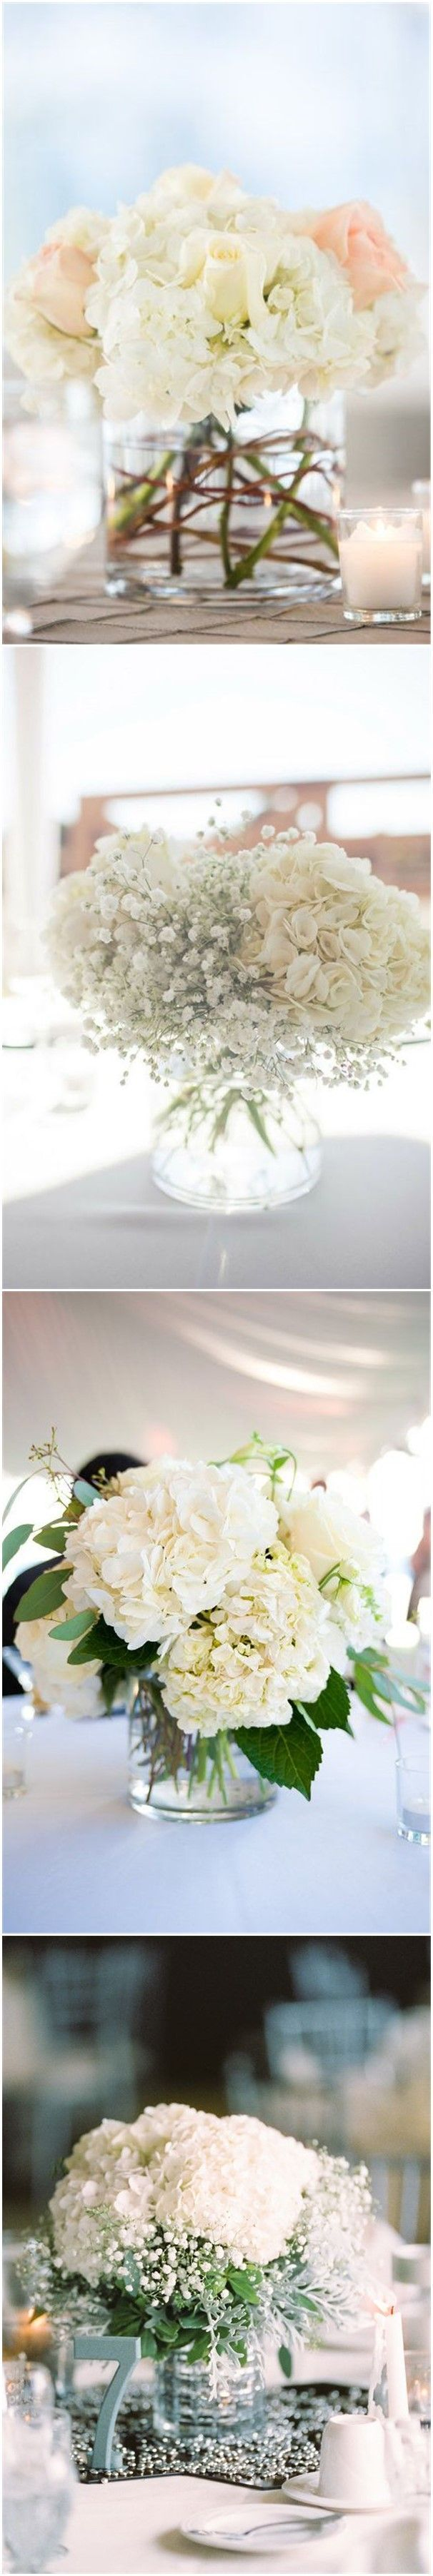 Wedding decorations simple   Simple Yet Rustic DIY Hydrangea Wedding Centerpieces Ideas